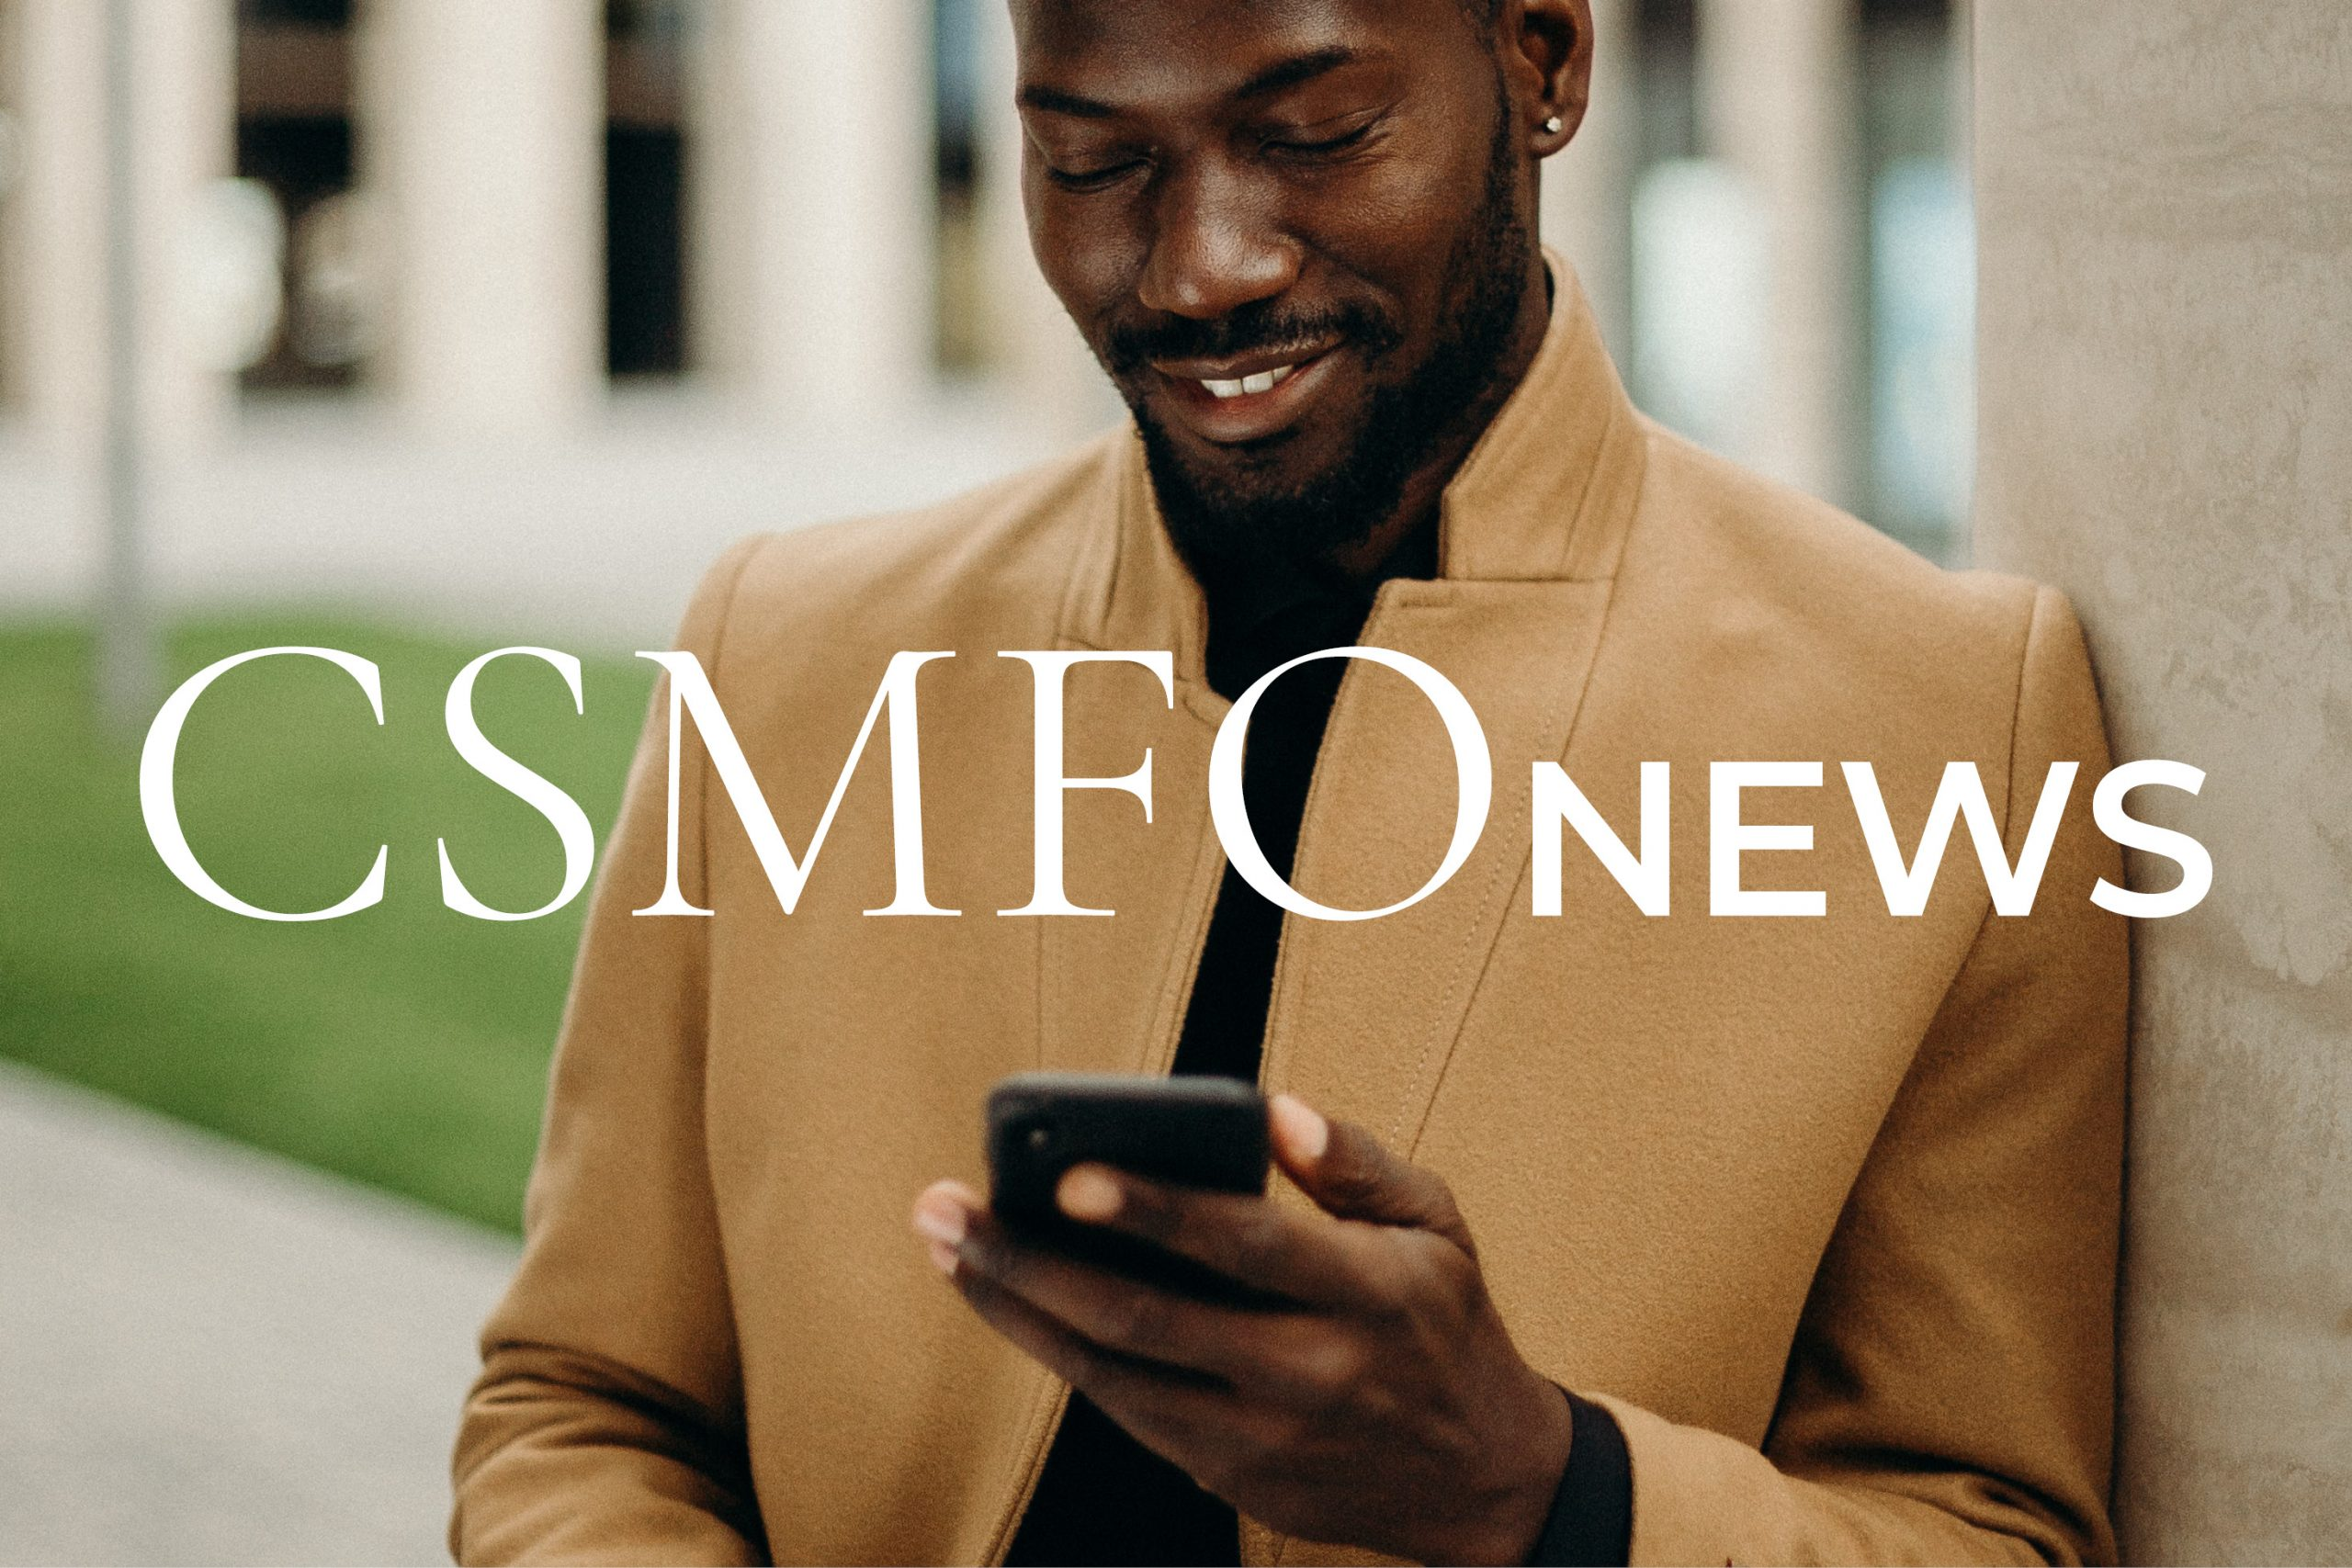 Introducing The CSMFO App!